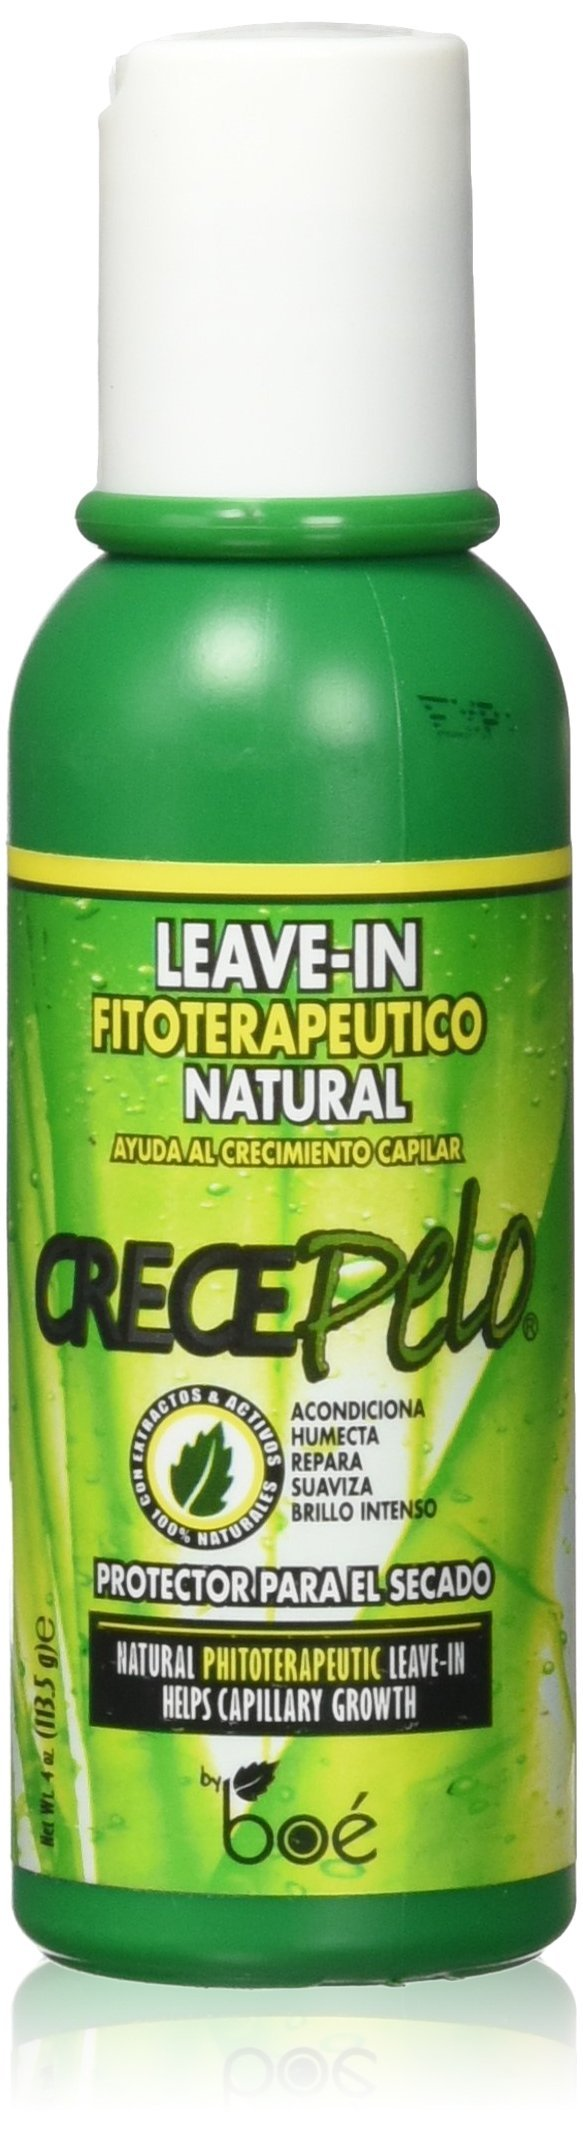 Boe Crecepelo Phitoterapeutic Leave‑In, 4 Ounce